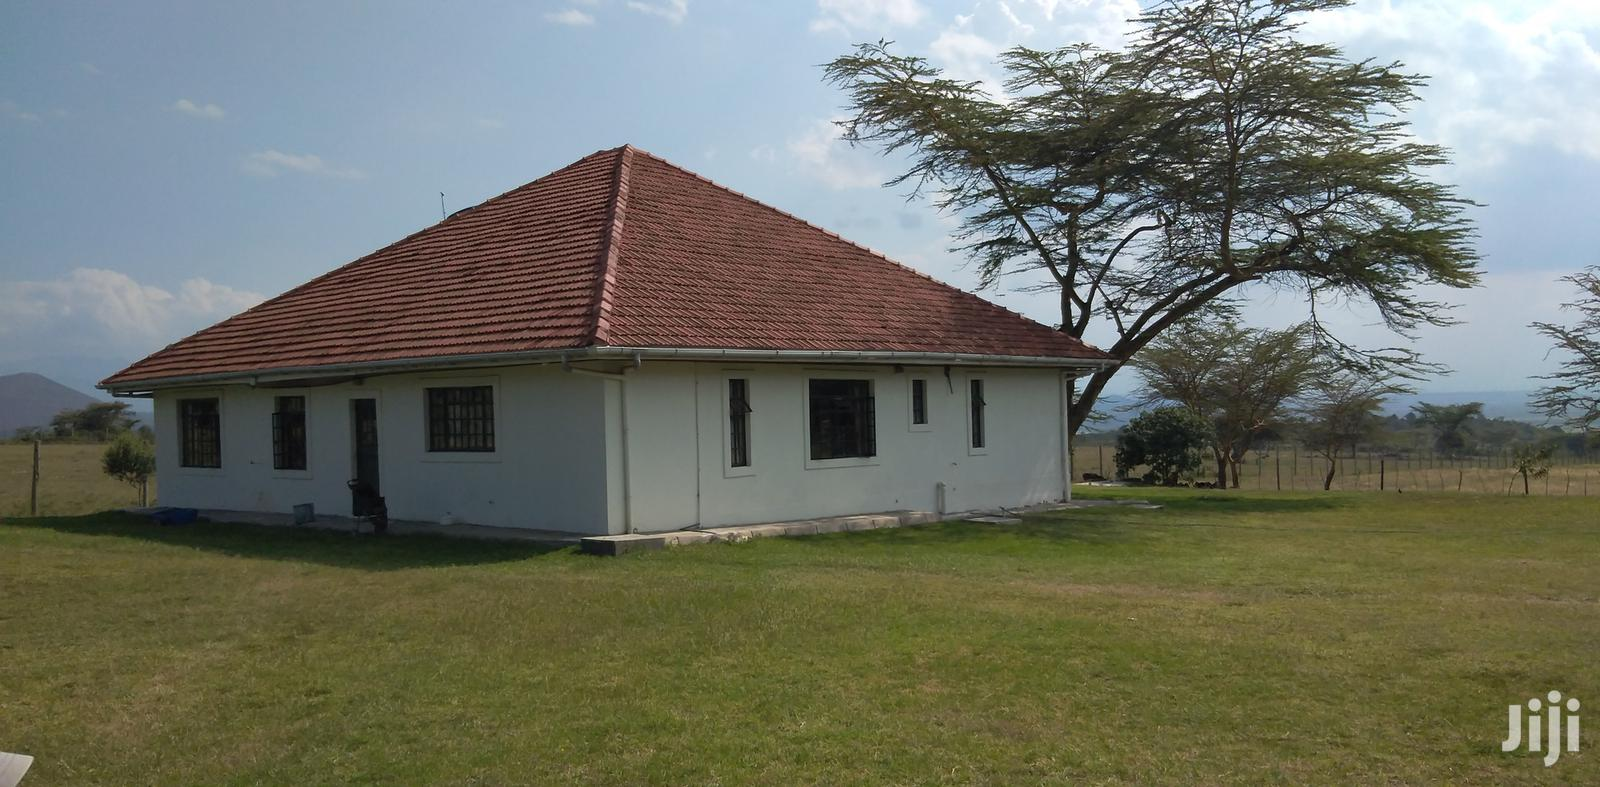 Lake Elementaita Next Jacaranda Hotel 3bedroom HSE On 6.5 Ac | Houses & Apartments For Sale for sale in Elementaita, Nakuru, Kenya